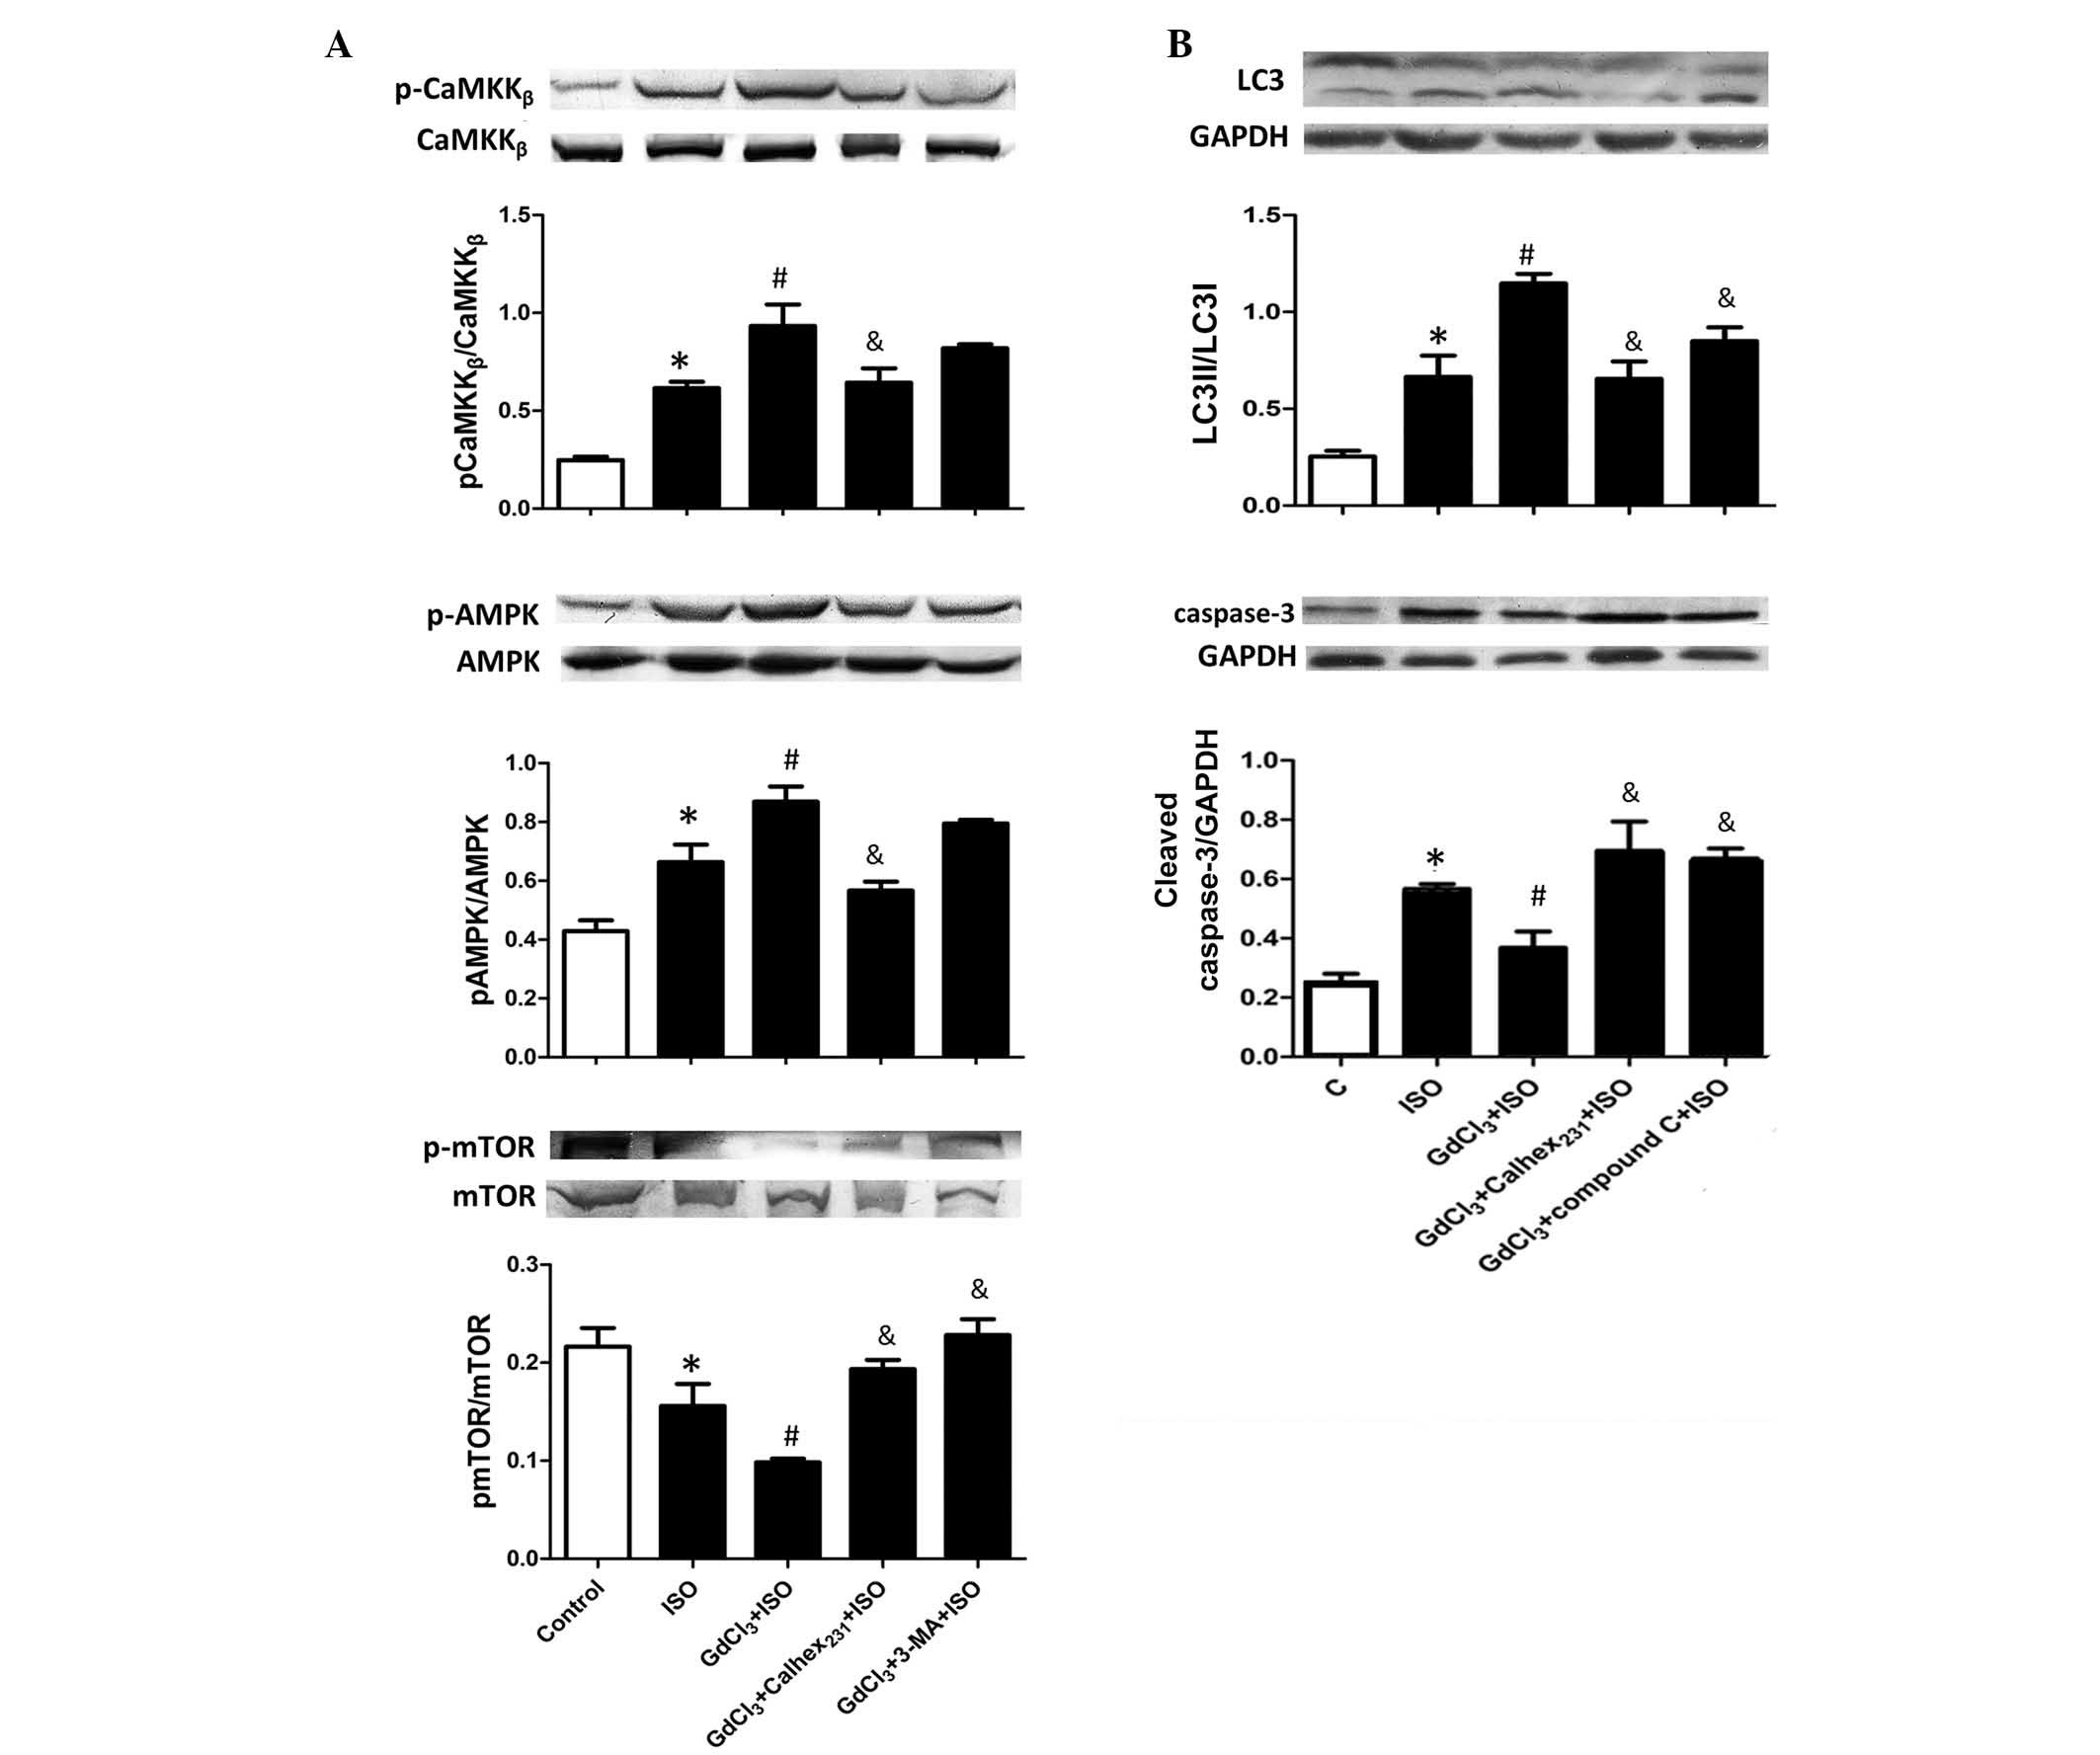 Suppression of calciumsensing receptor ameliorates cardiac effect of calcium sensing receptor on autophagy initiation signaling during iso induced cardiac hypertrophy protein expression levels of a camkk buycottarizona Choice Image